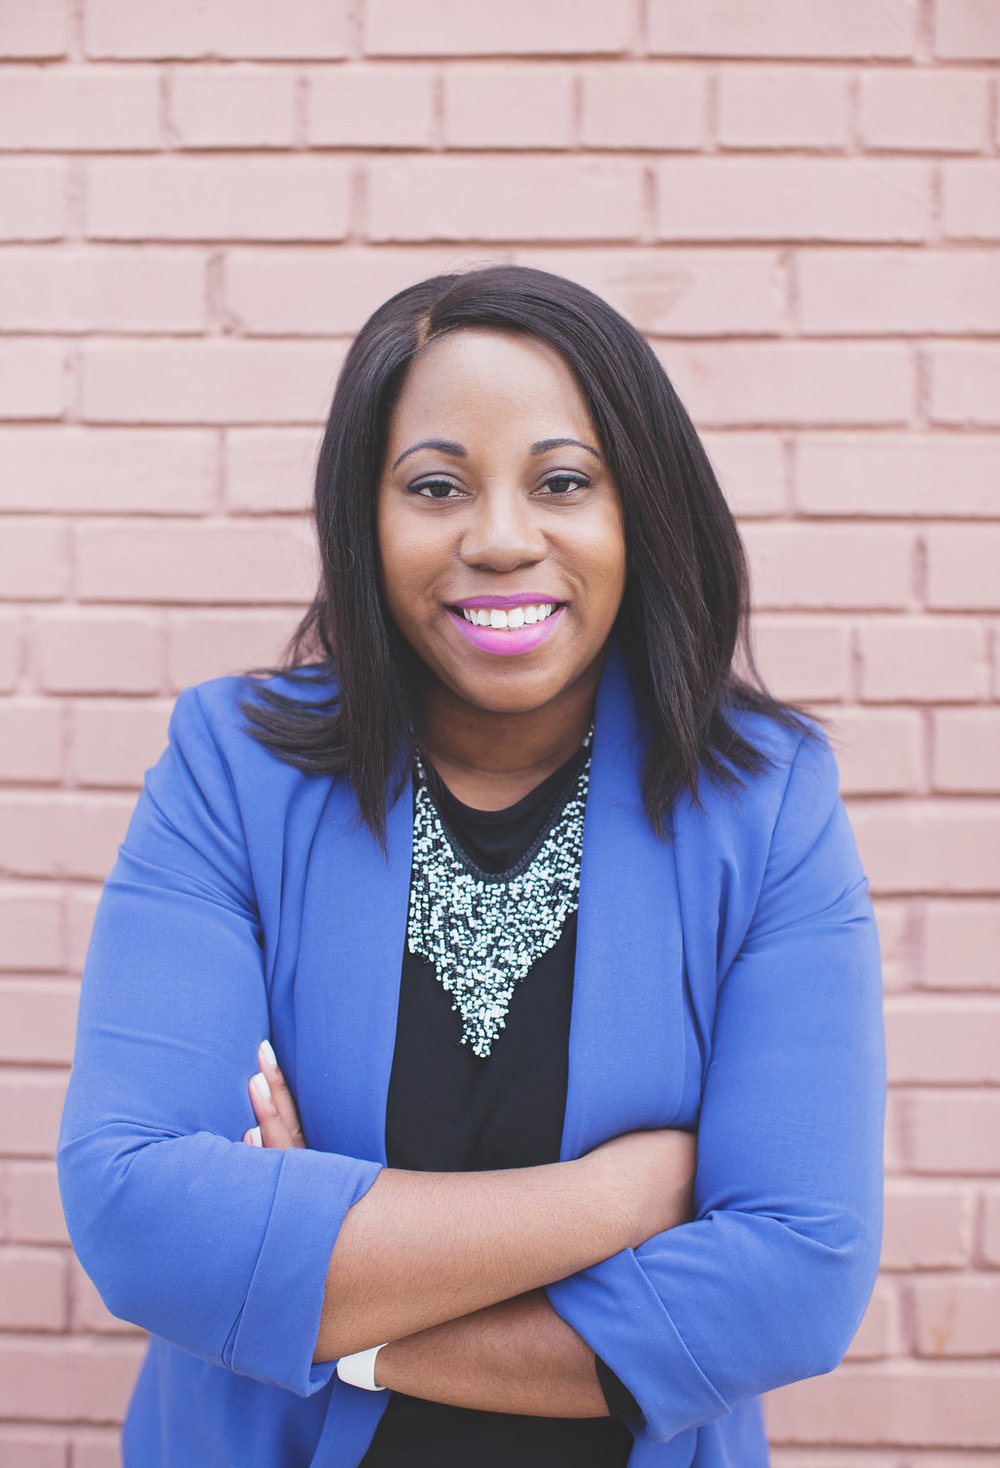 Hi, I'm Tiffany - I help people get great jobs and organizations retain great people. As a career & style coach, I demystify the job search process for new, emerging, and seasoned professionals in transition. As a professional development consultant, I help mission-driven organizations train, develop, and retain high potential people and teams.